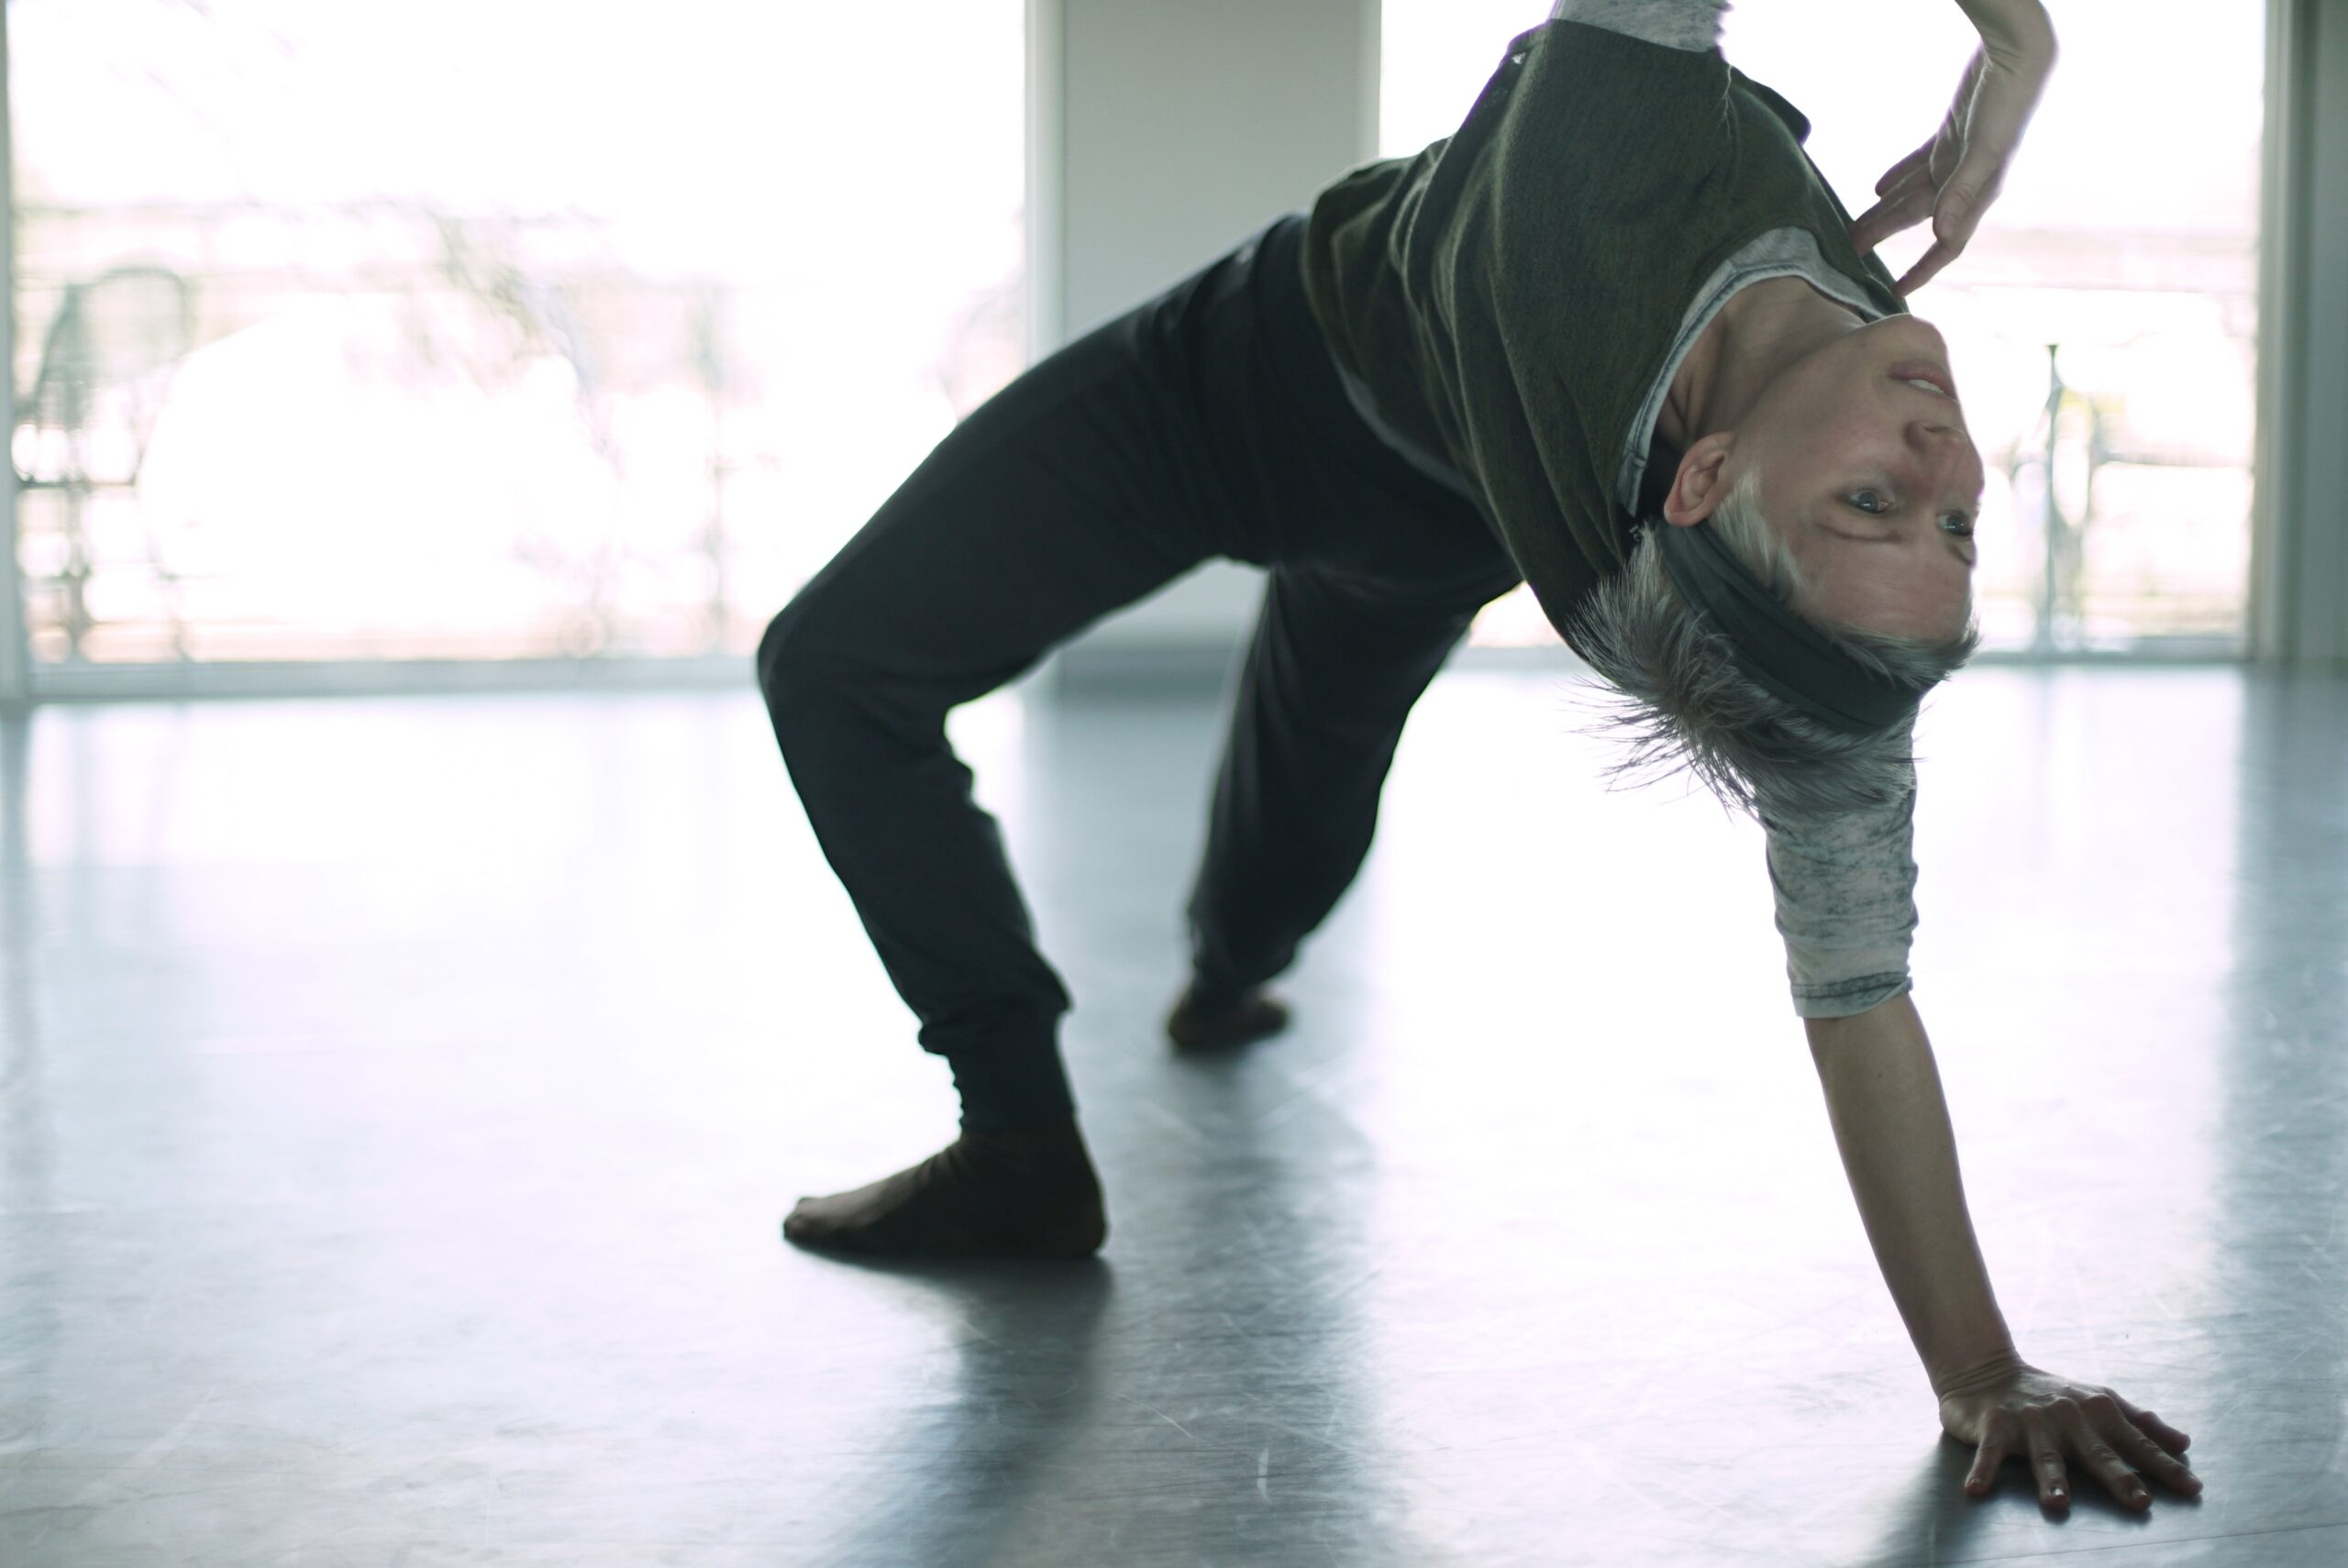 A dancer holds a sort of bridge pose in a dance studio, looking back and upside down